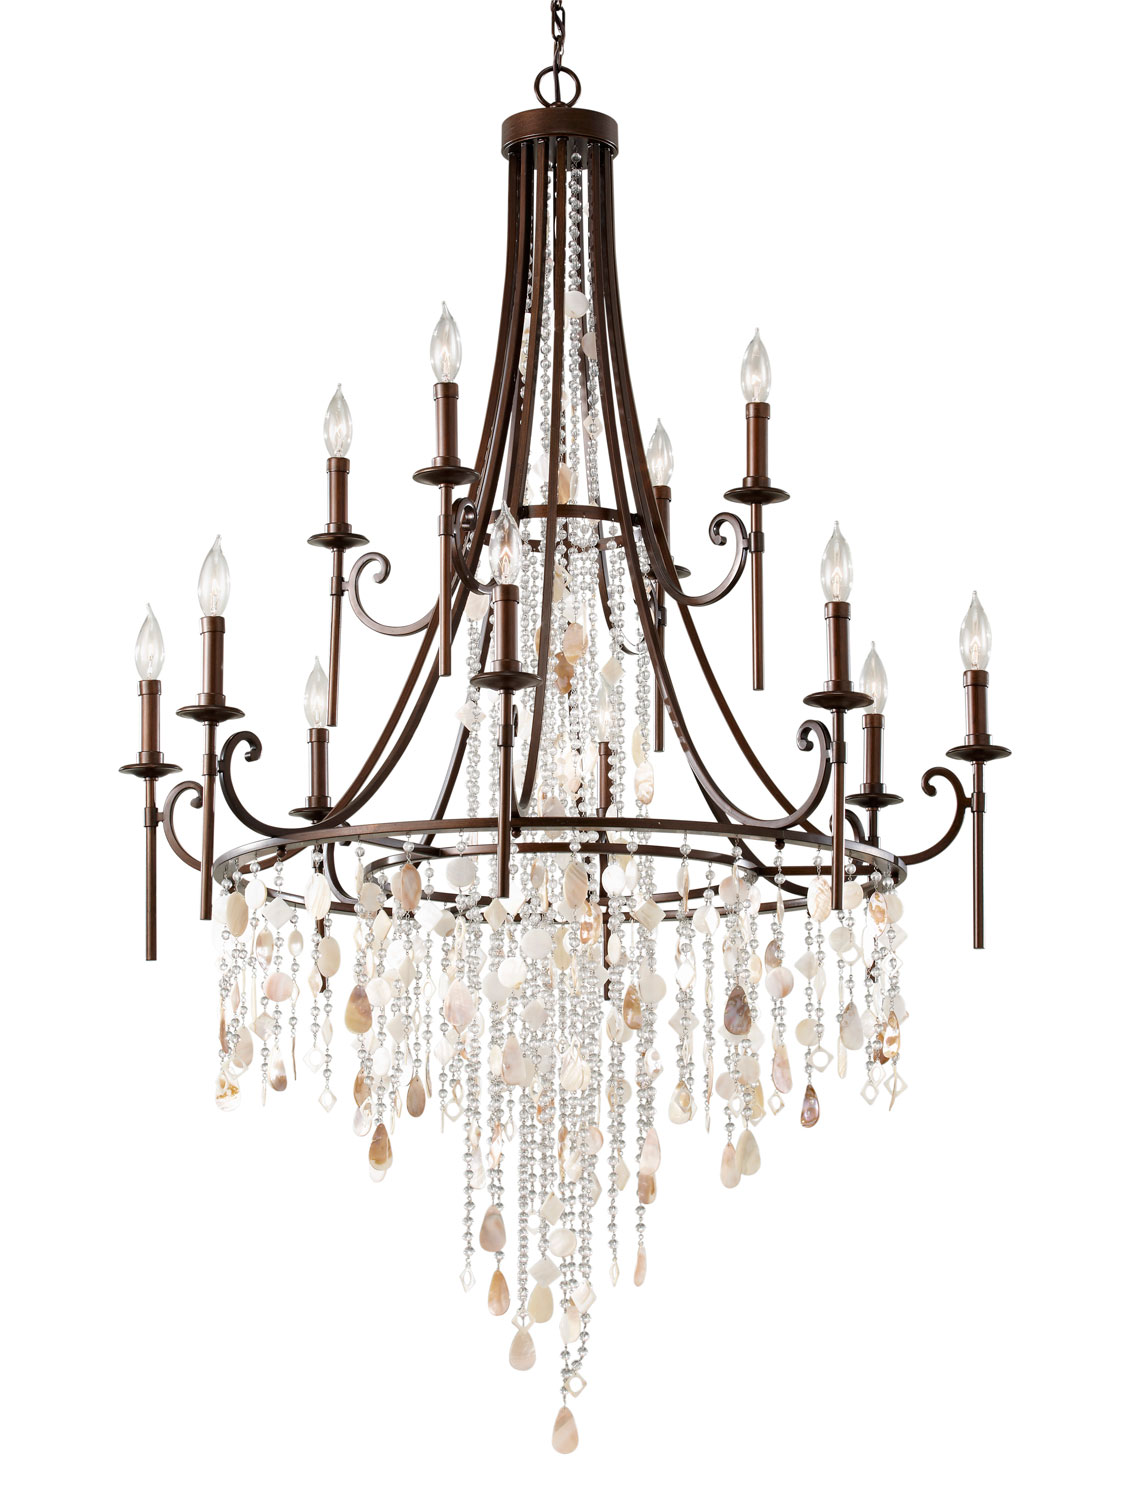 12 Light Chandelier from the Cascade collection by Feiss F266184HTBZ